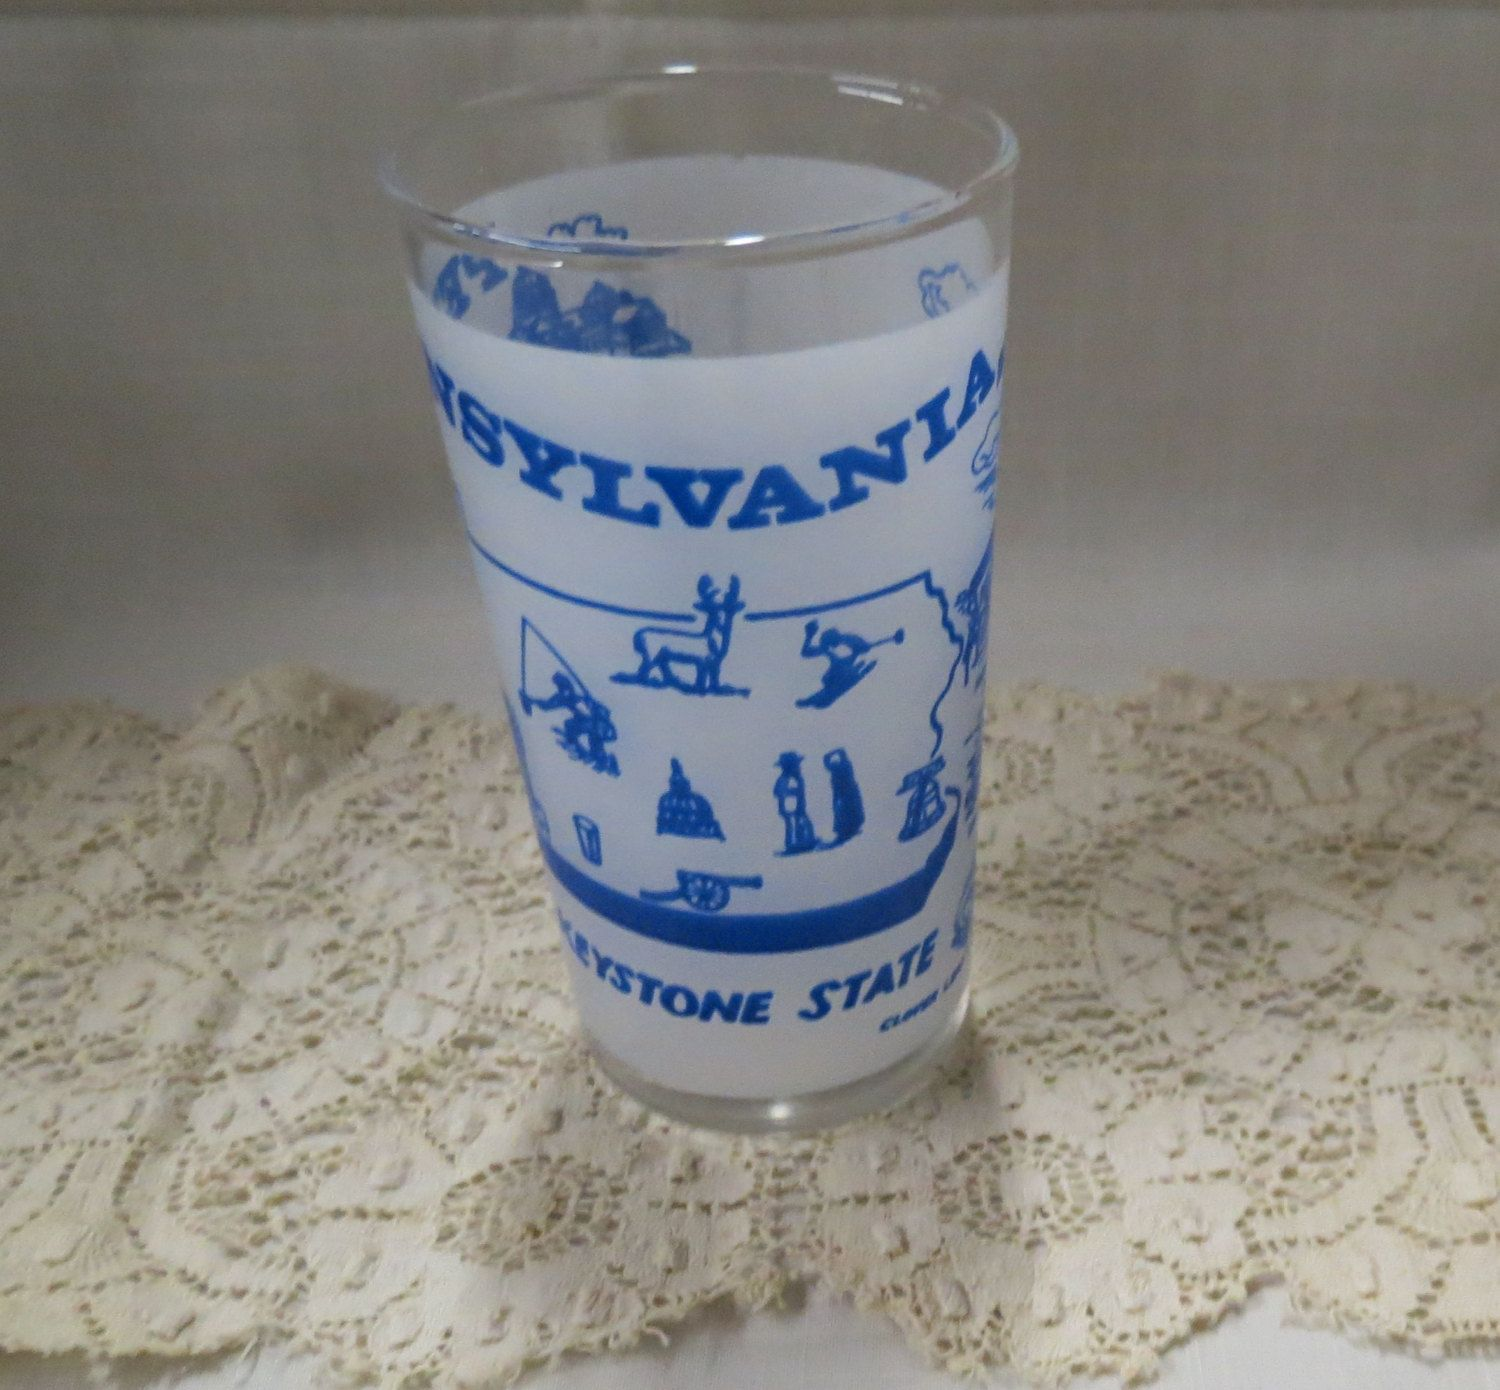 Pennsylvania Souvenir Tumbler Glass Vintage Frosted Glass The Keystone State Kitchenware Kitchen Ware #kitchenware